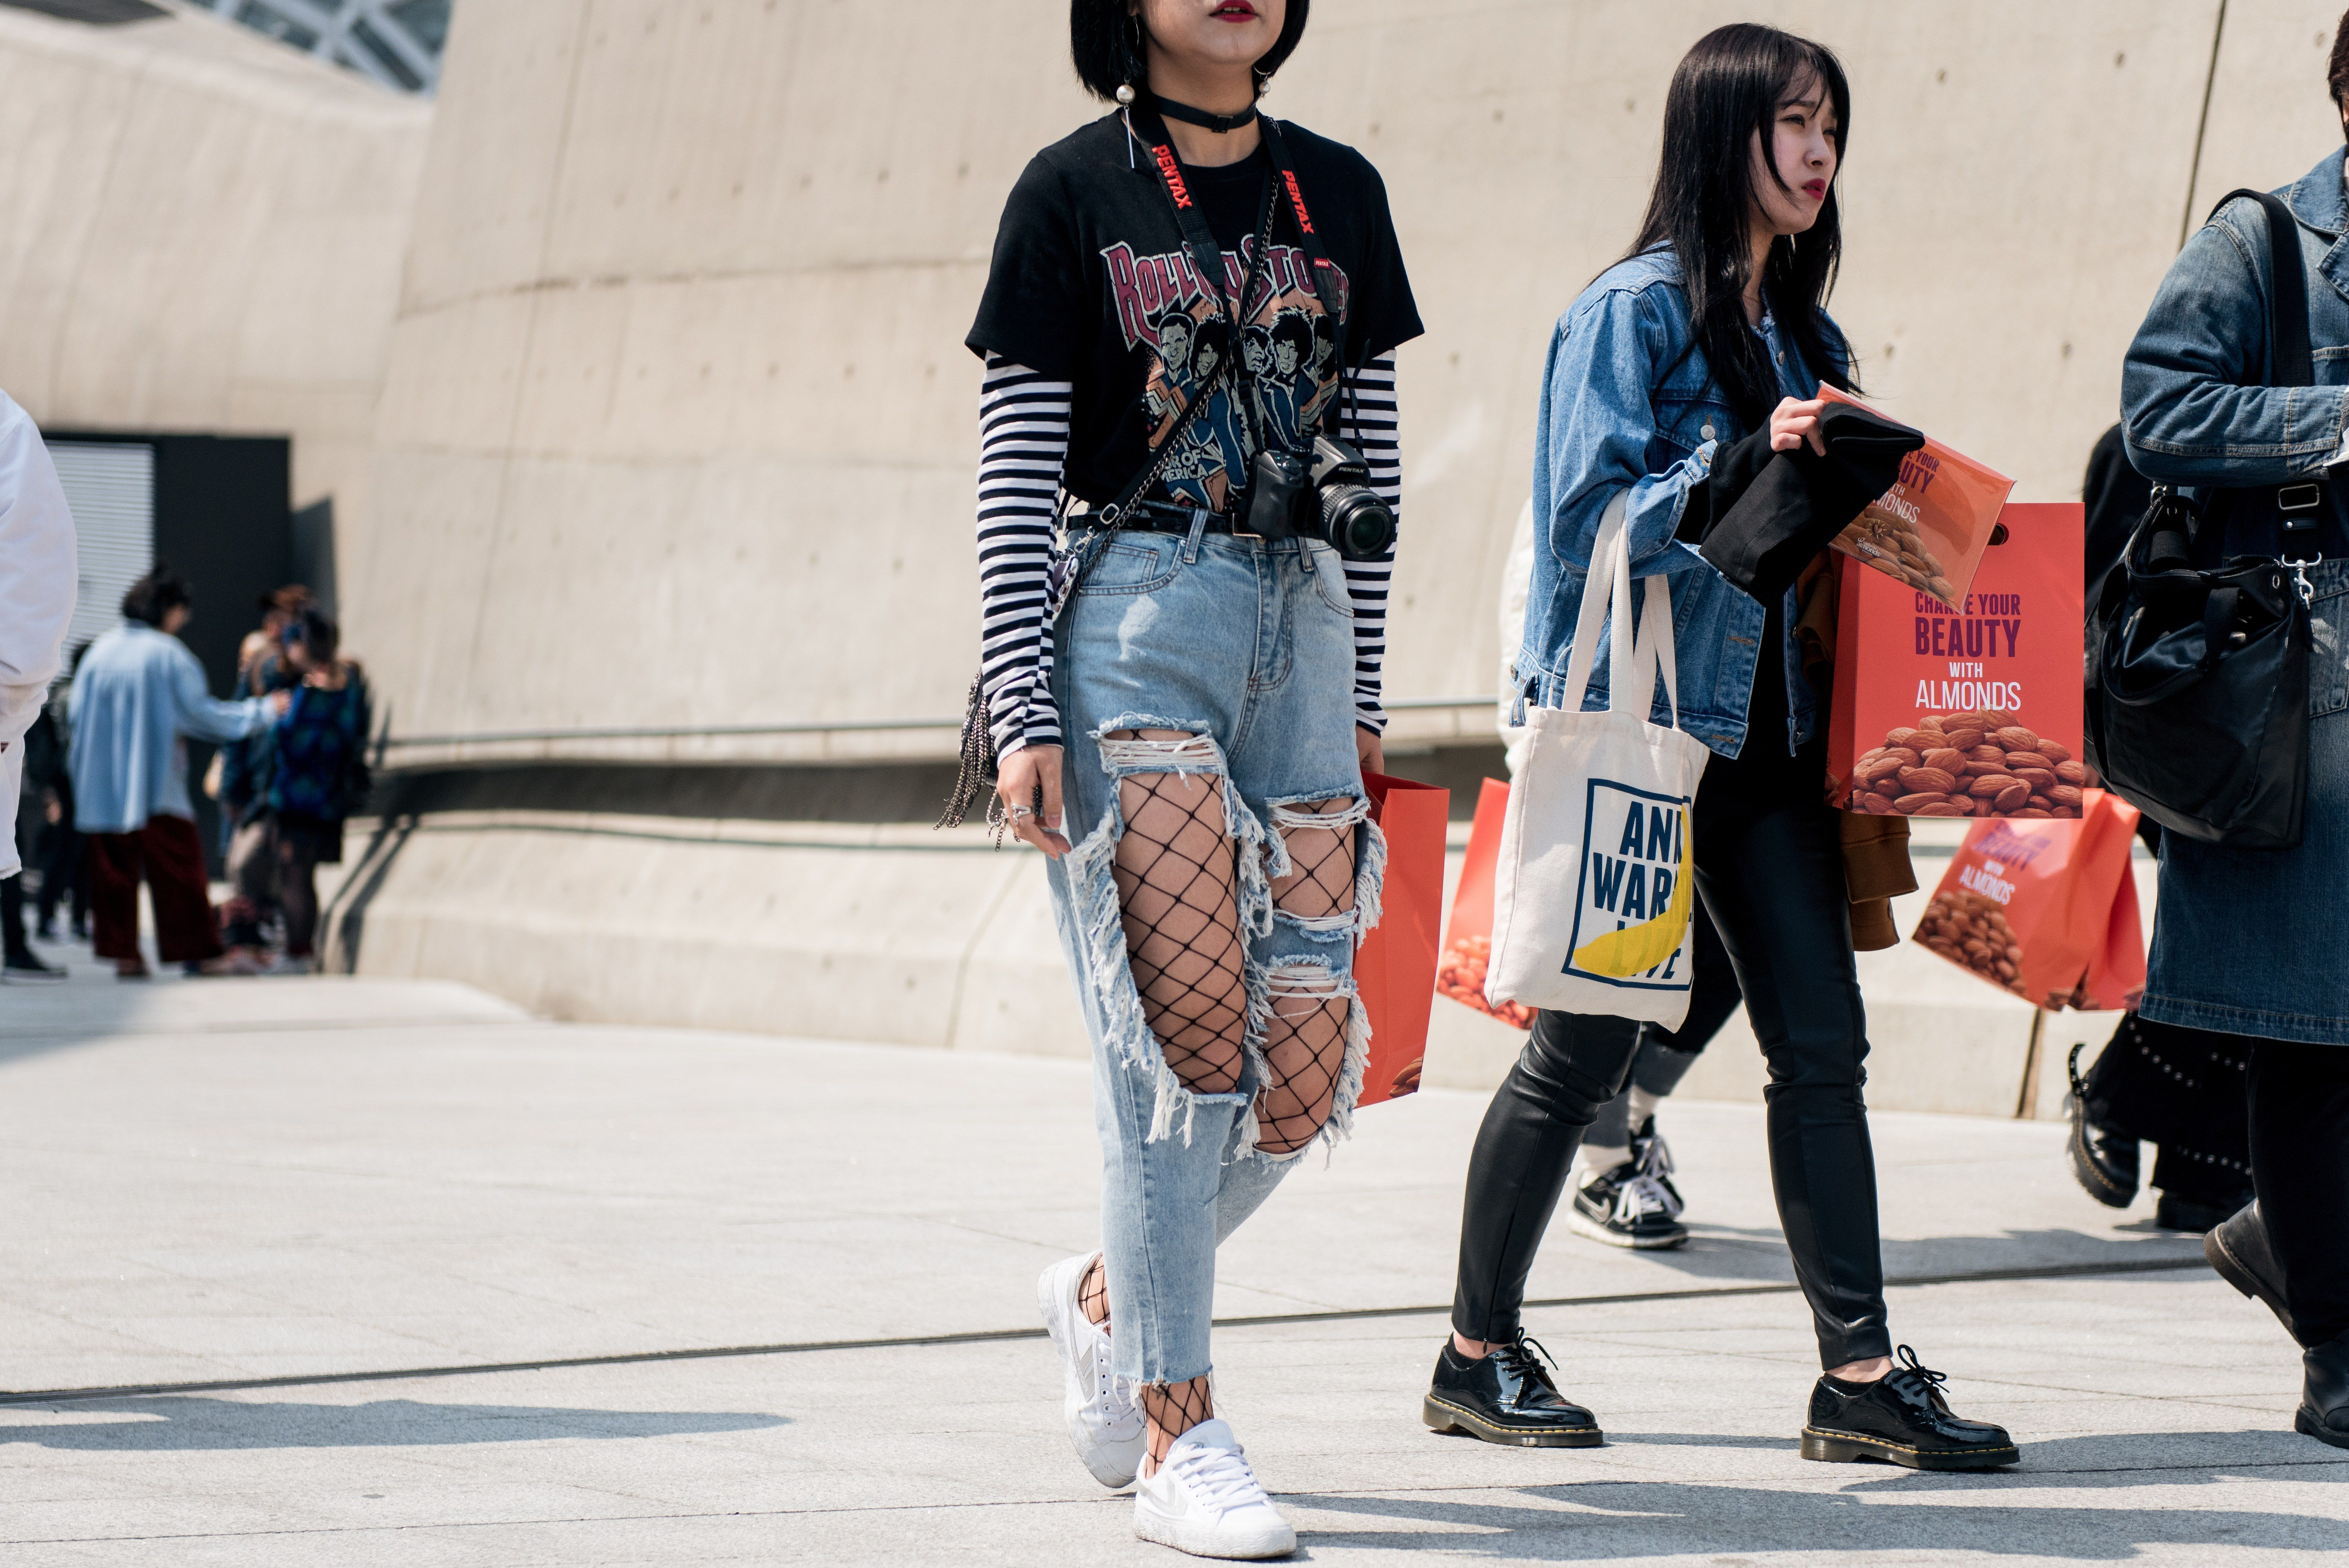 Ripped Jeans and Fishnets Are All You Need to Be A Street Style Star D Photos | W Magazine